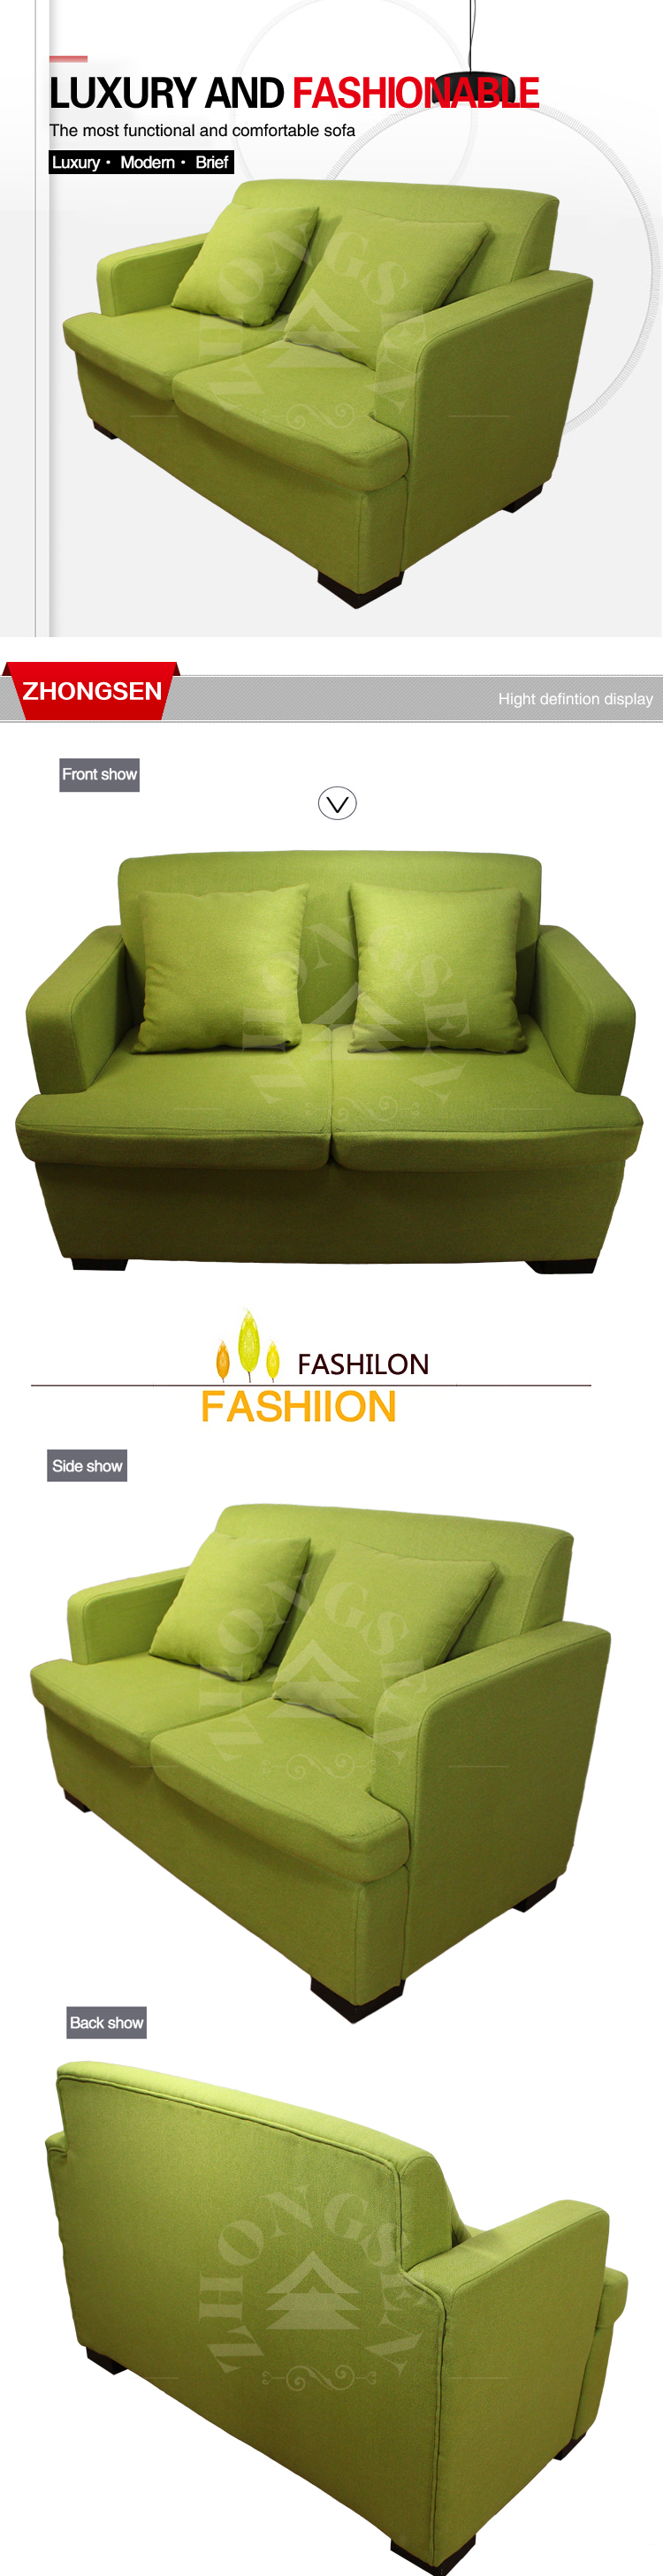 2017 Wholesale Alibaba Green Sofa Bed 2 Seater Sofa From Carrefour